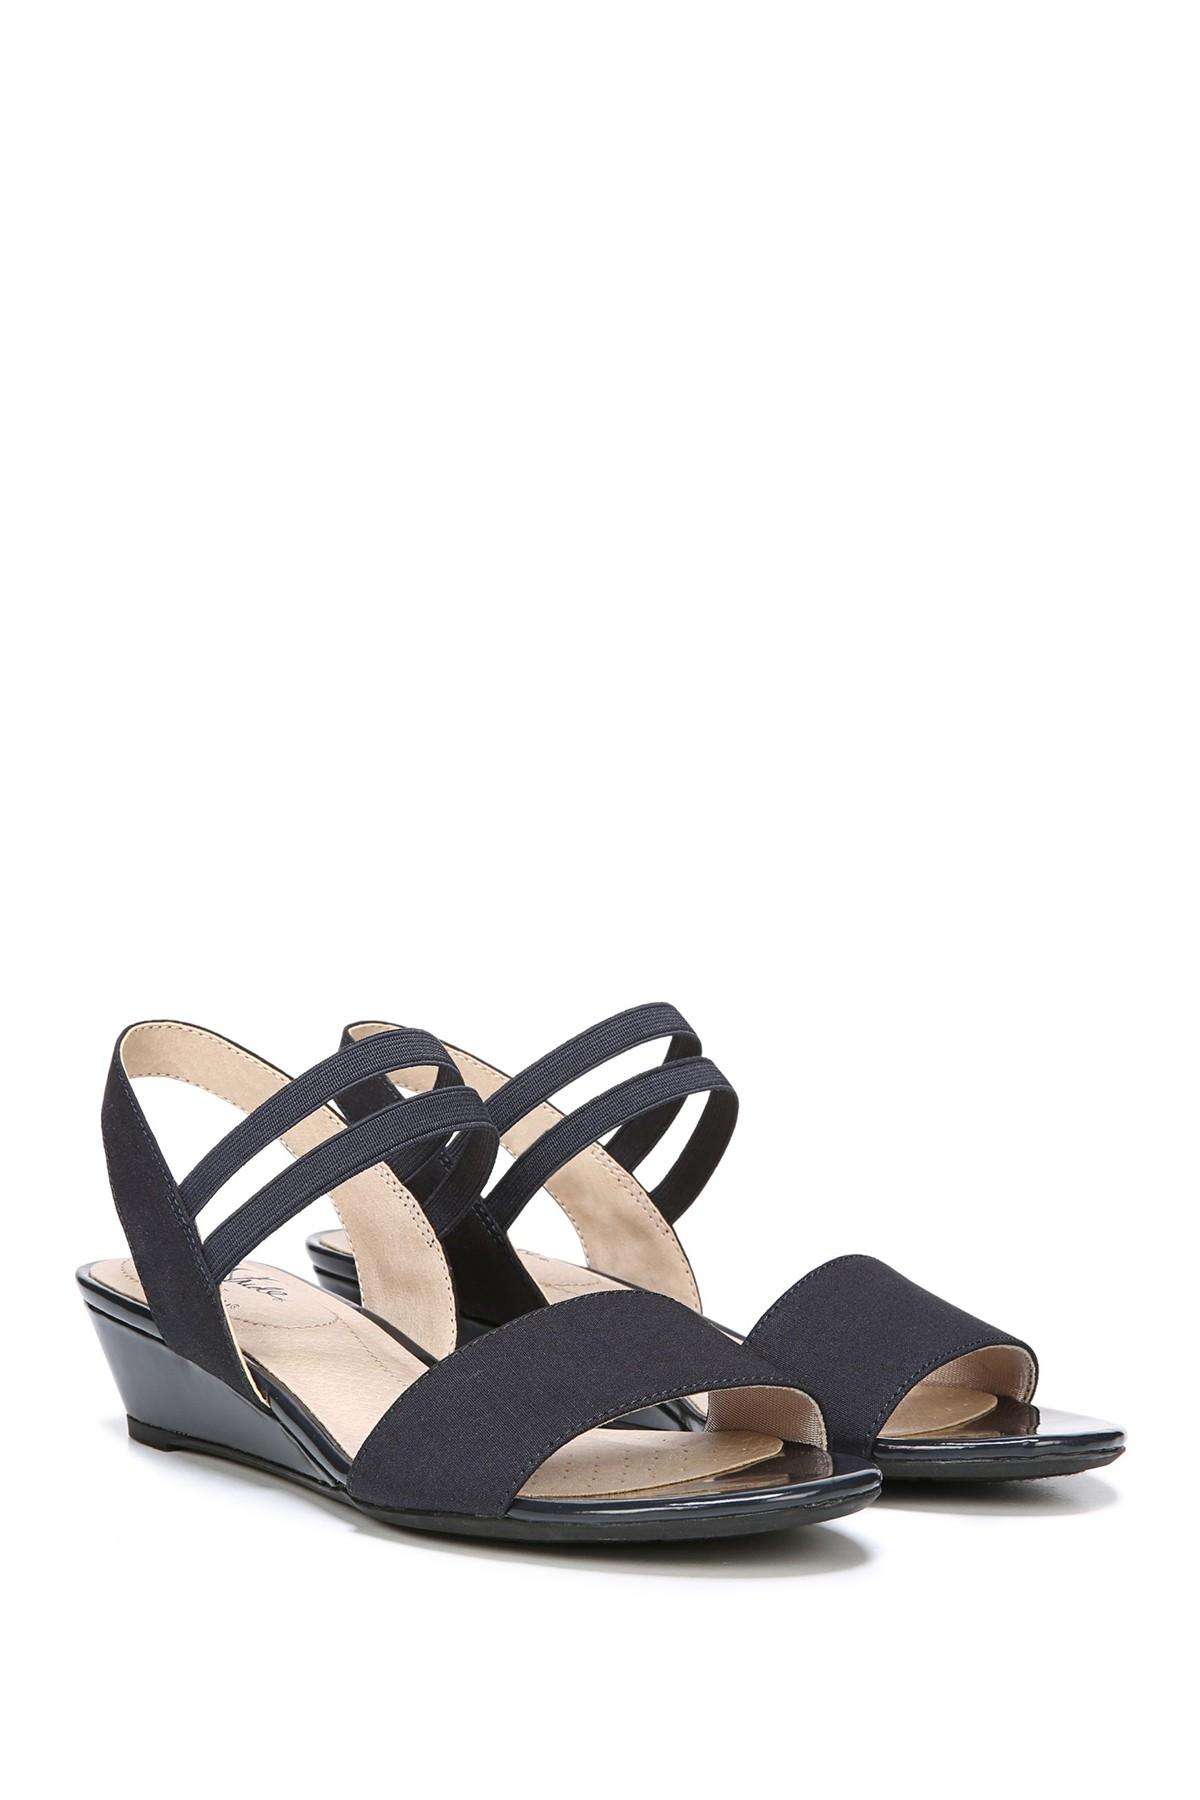 fed93cde490 LifeStride Yolo Strappy Wedge Sandal - Wide Width Available in Blue ...